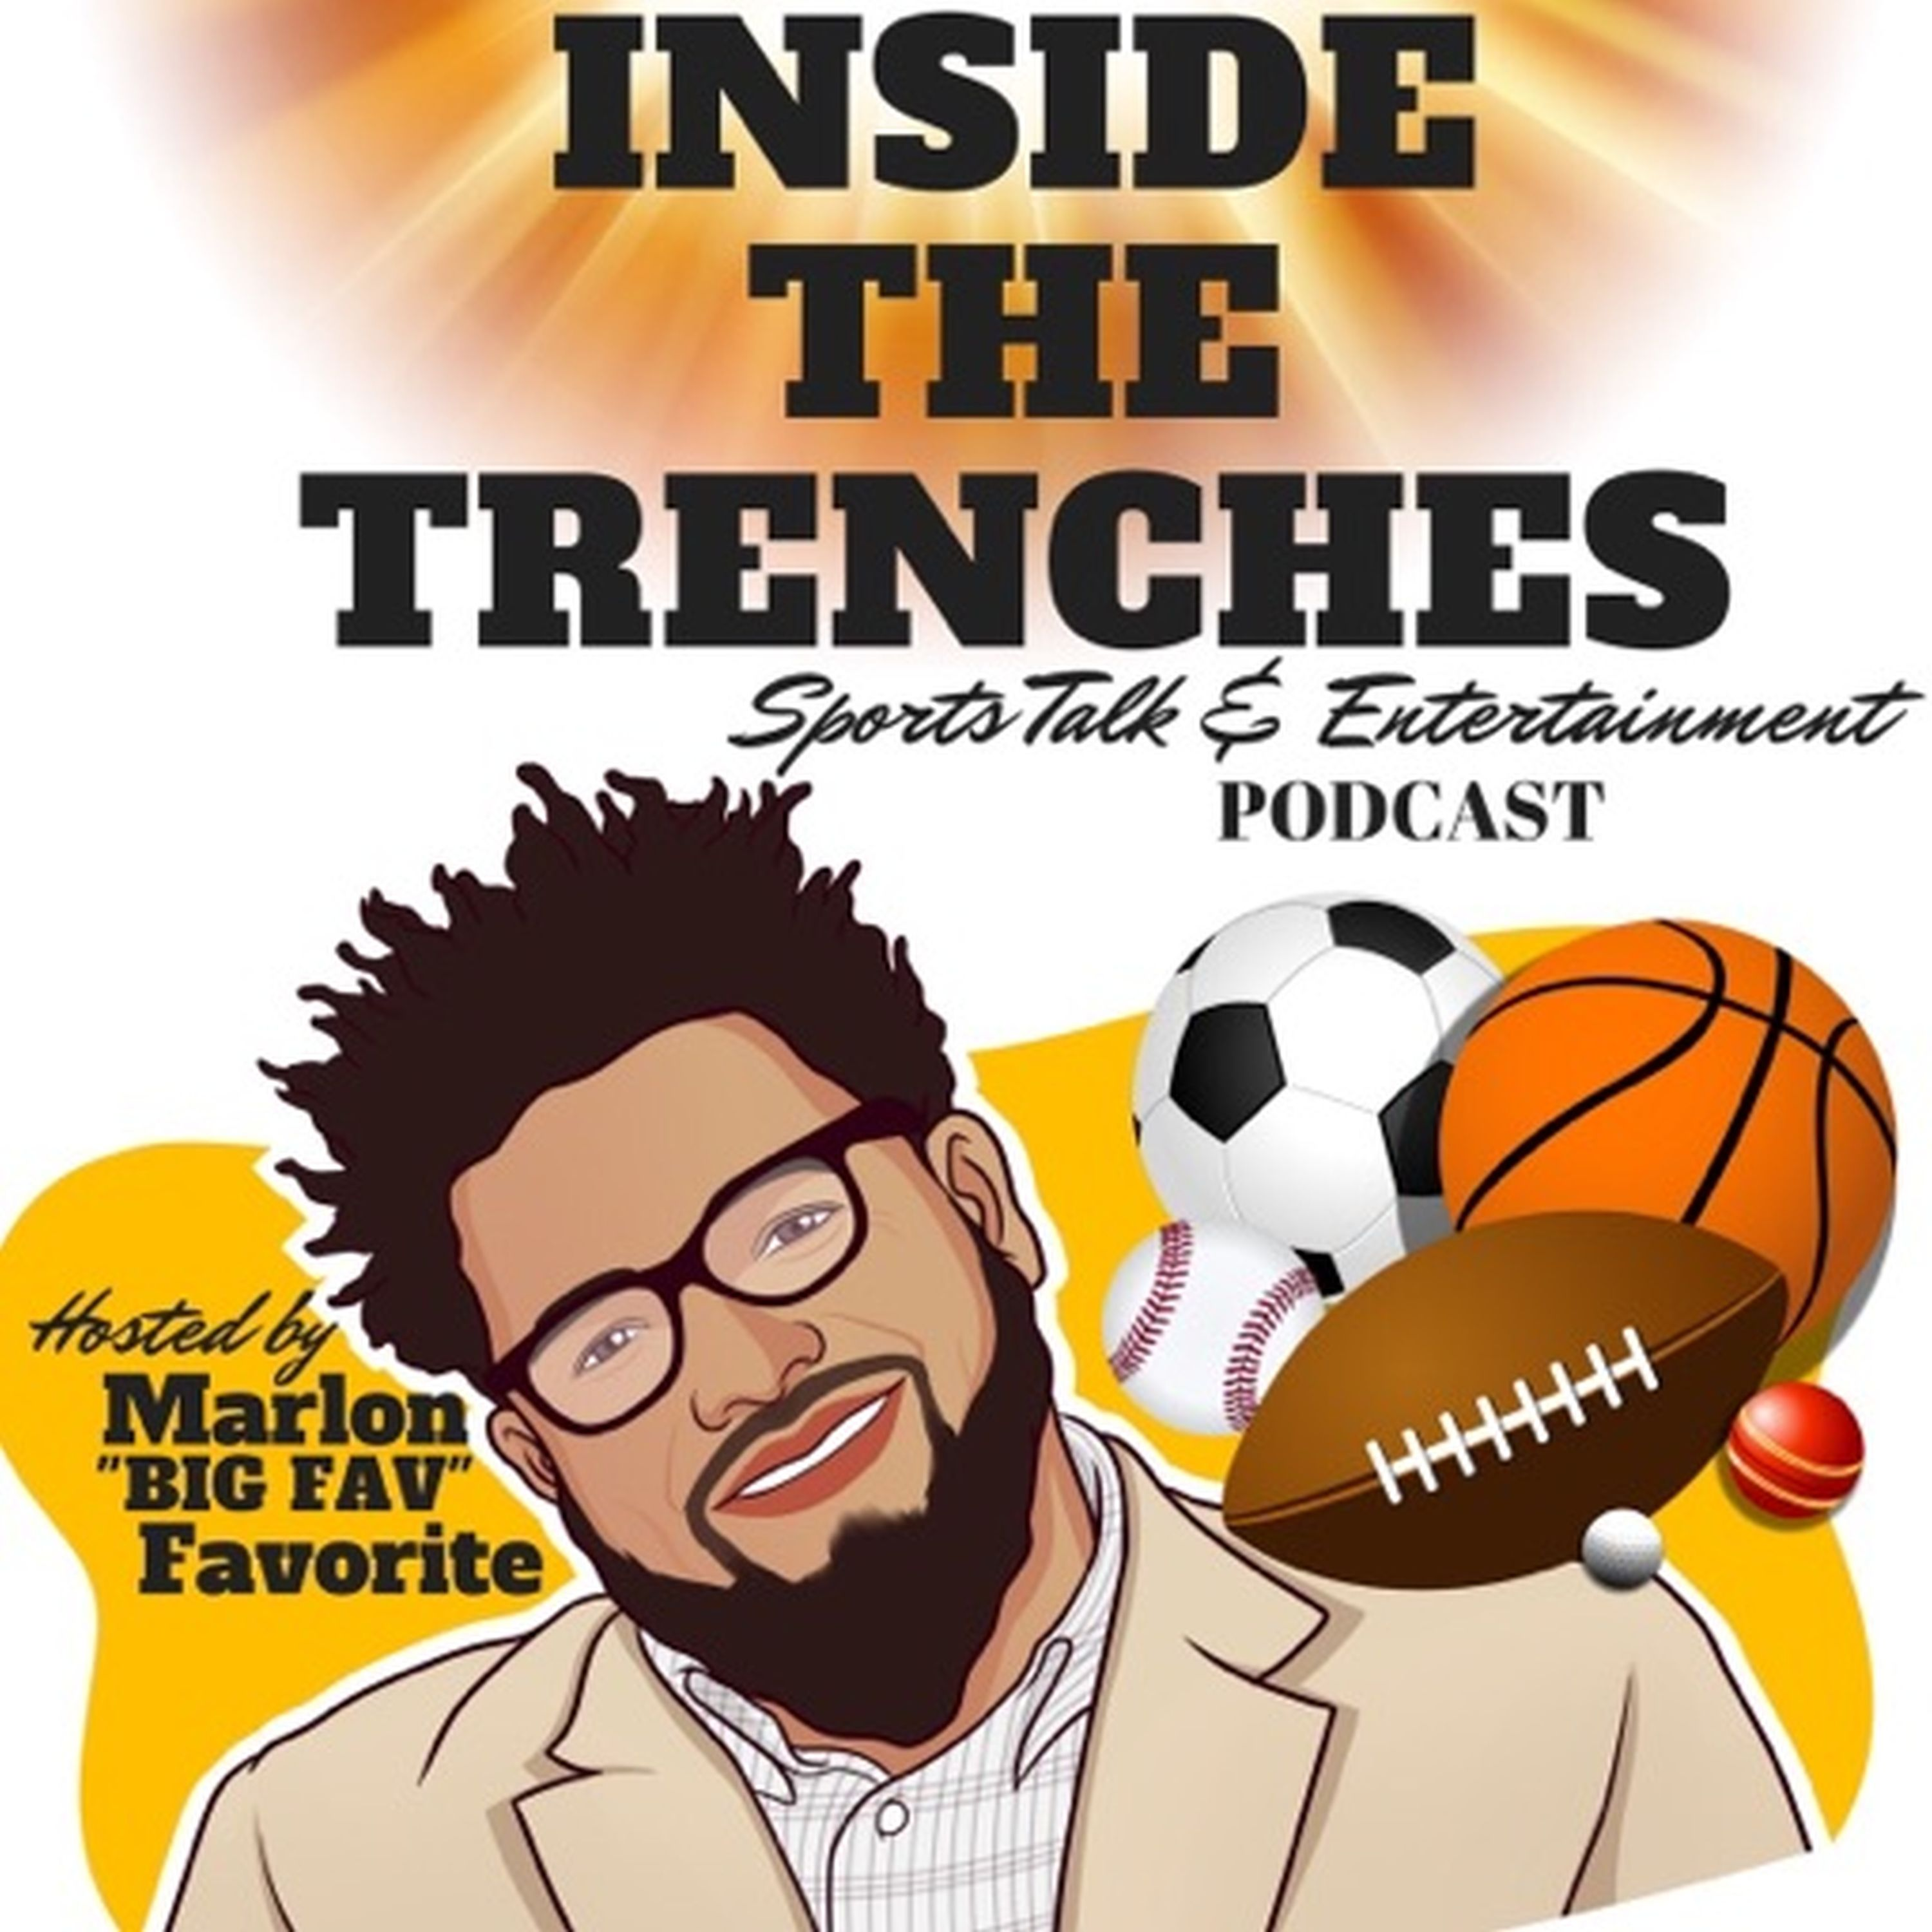 INSIDE THE TRENCHES - MARLON FAVORITE